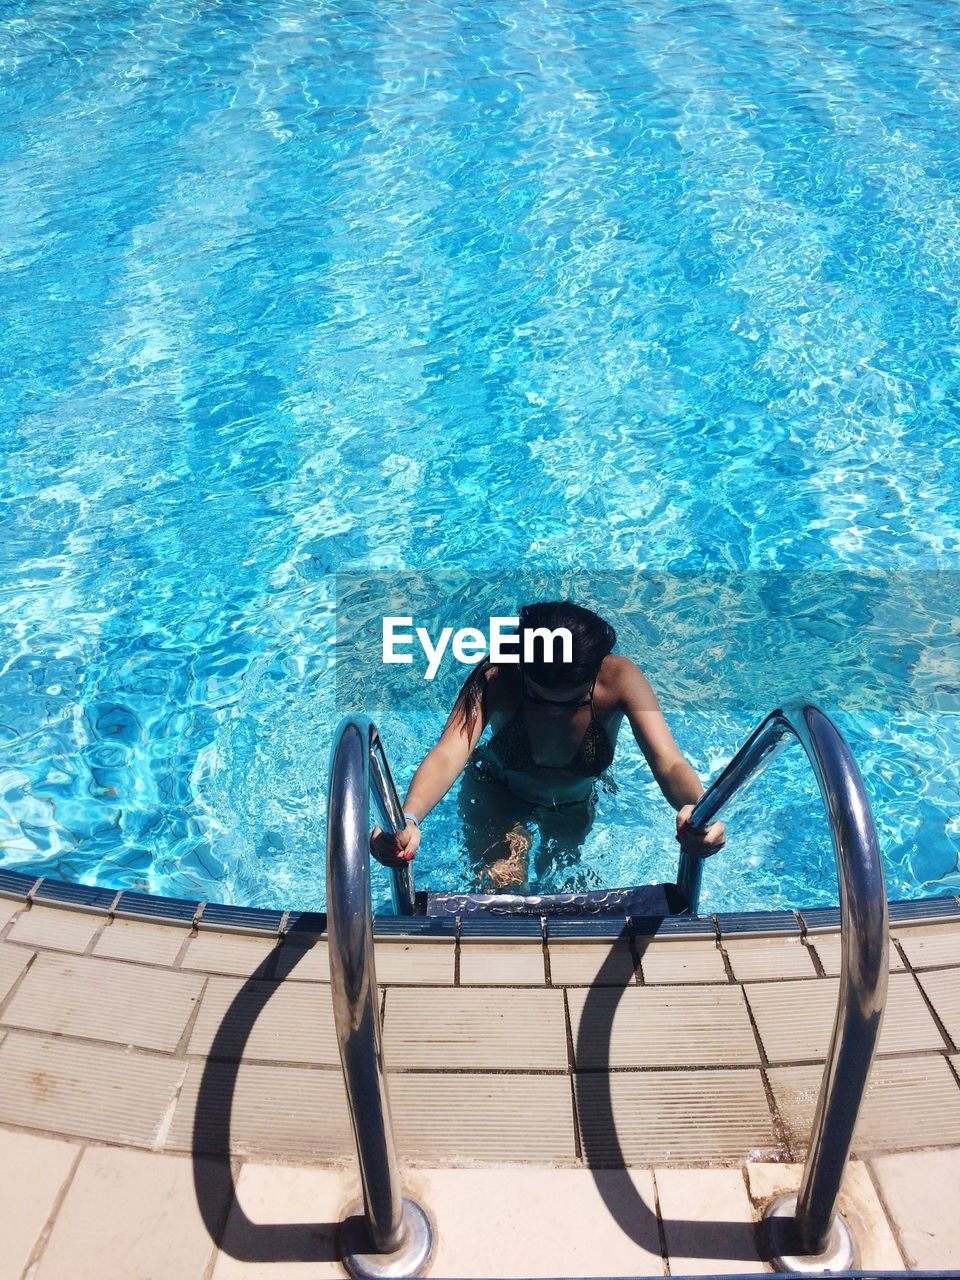 High angle view of woman on ladder in swimming pool